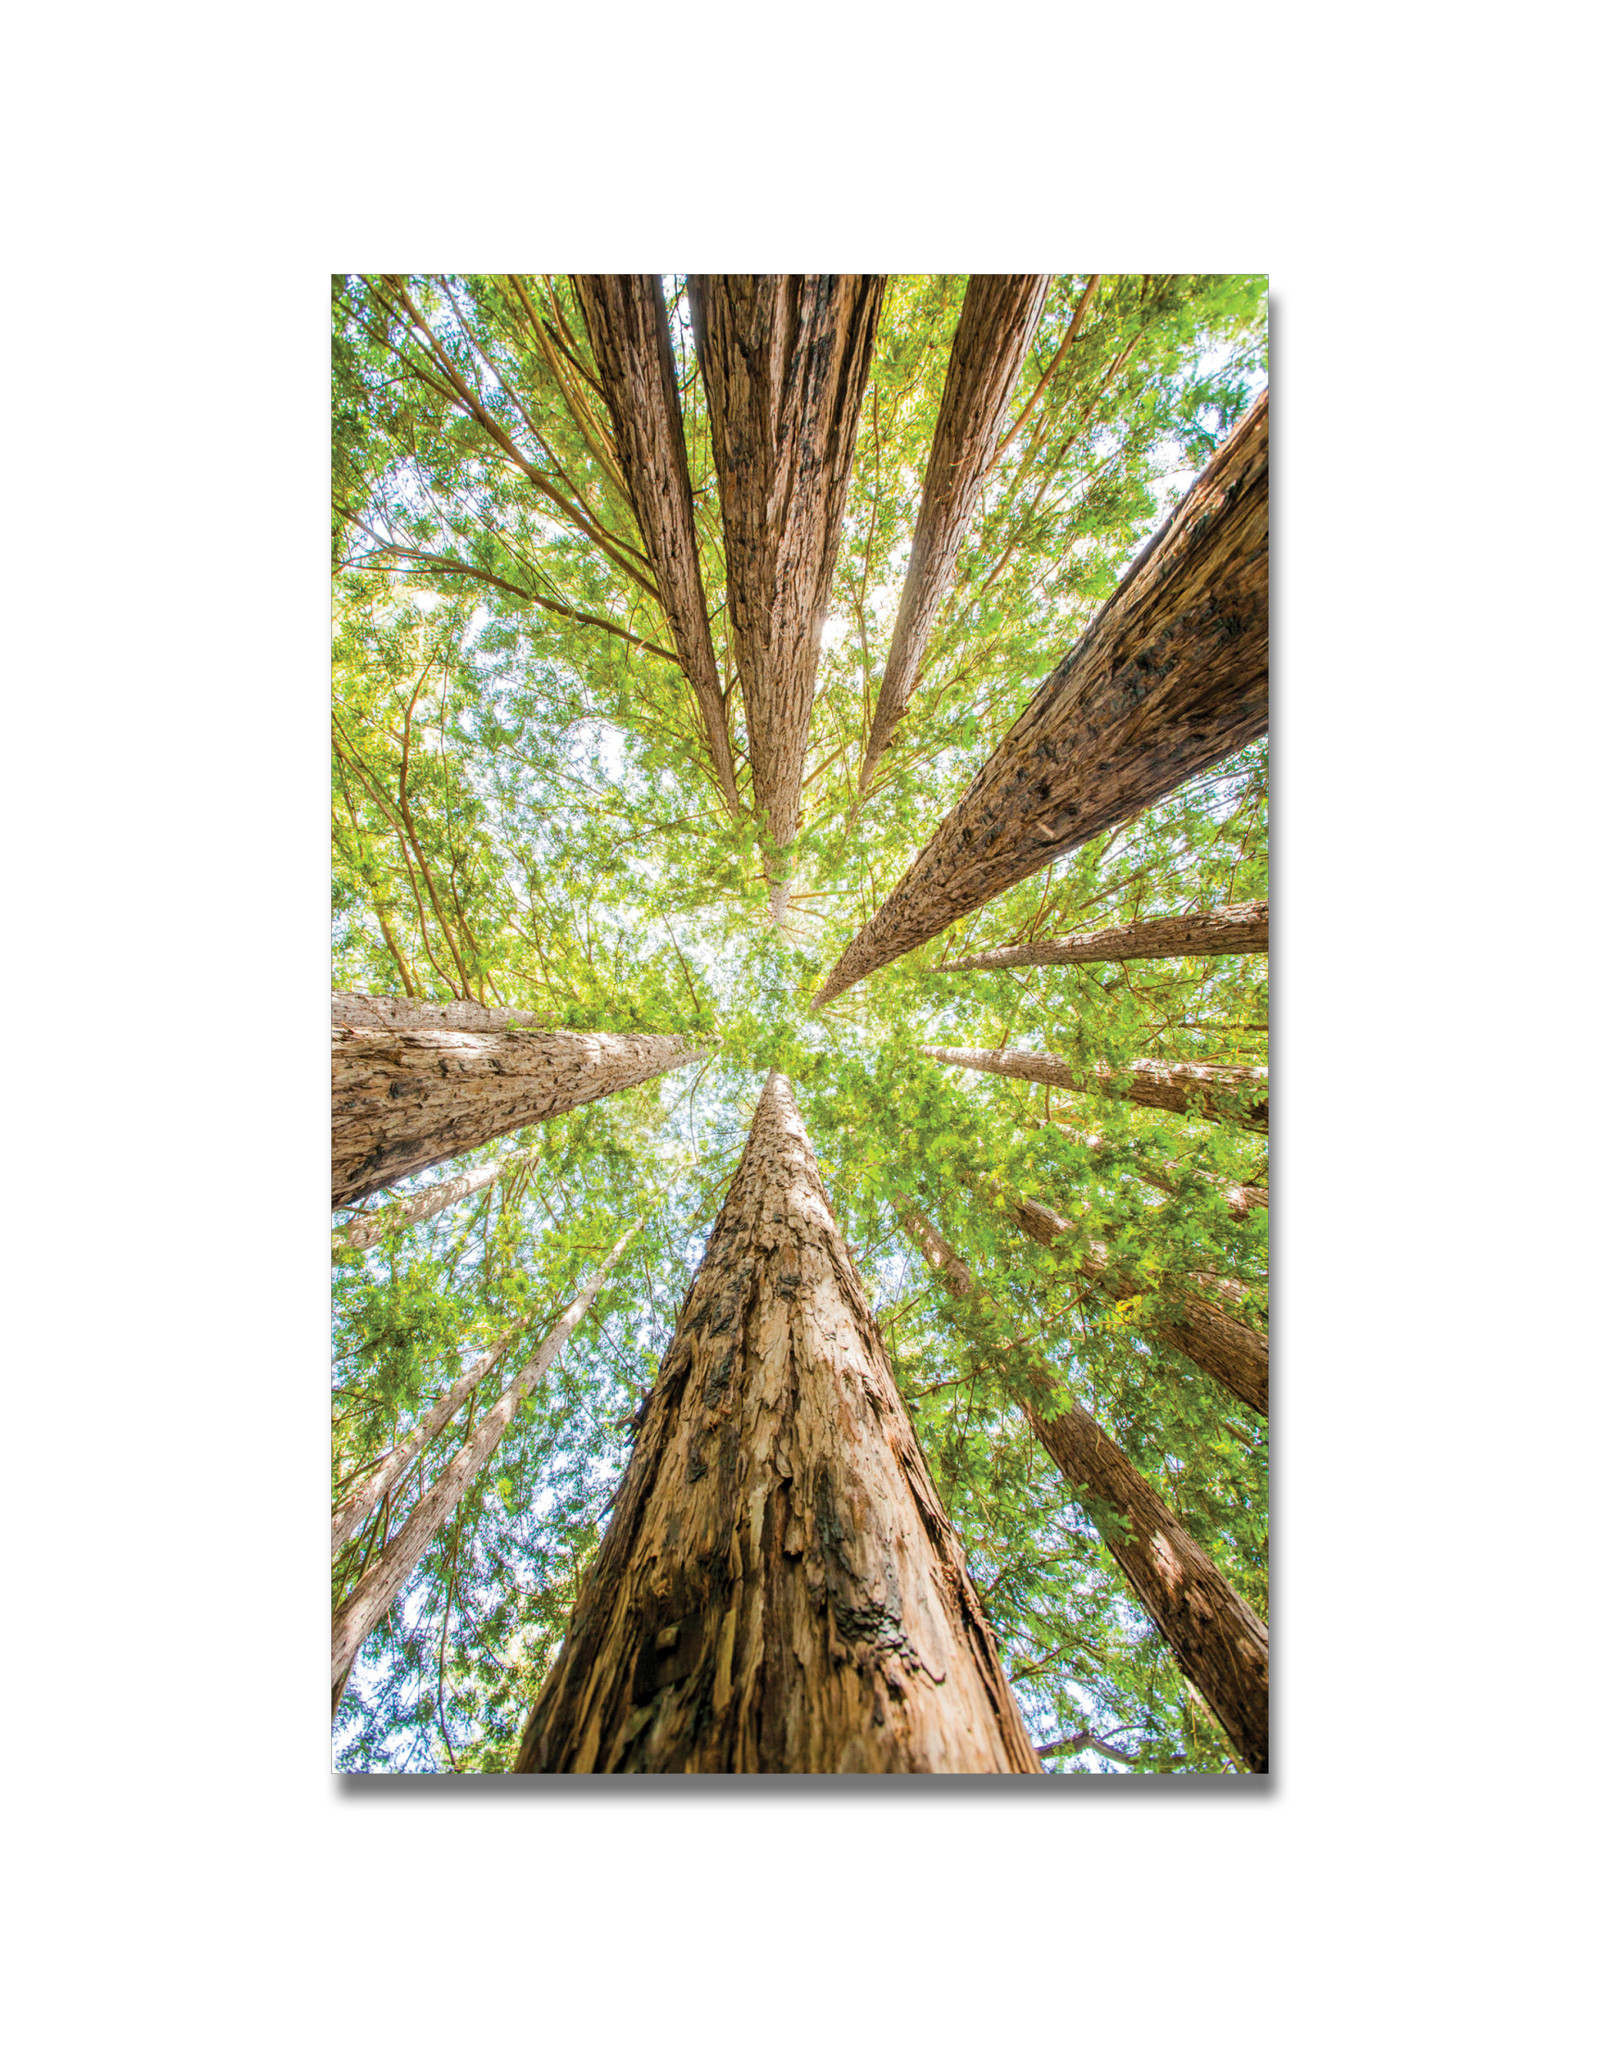 Redwoods - No. 2